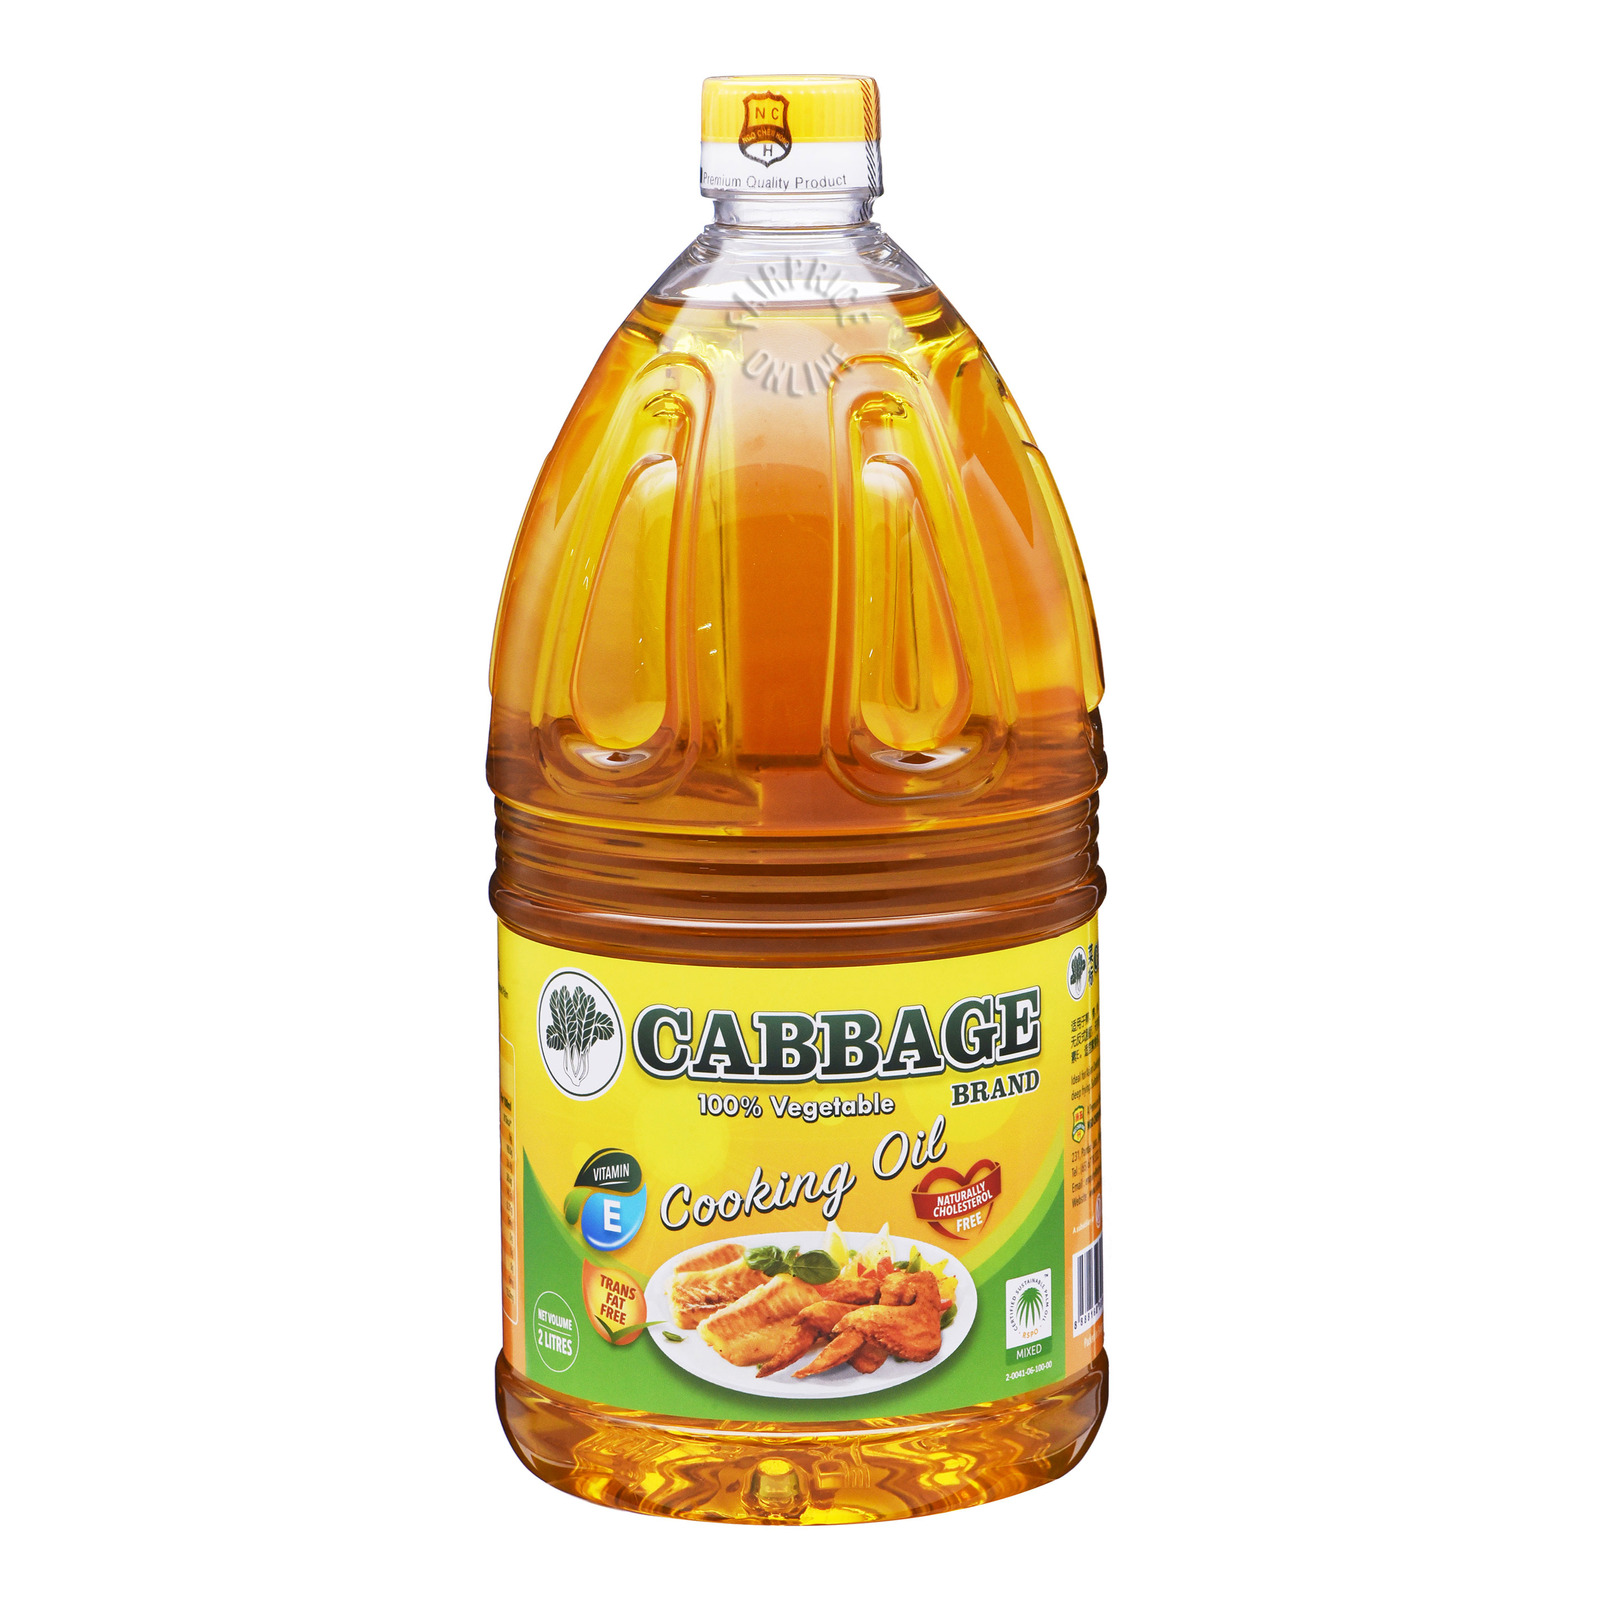 Cabbage Brand Vegetable Cooking Oil